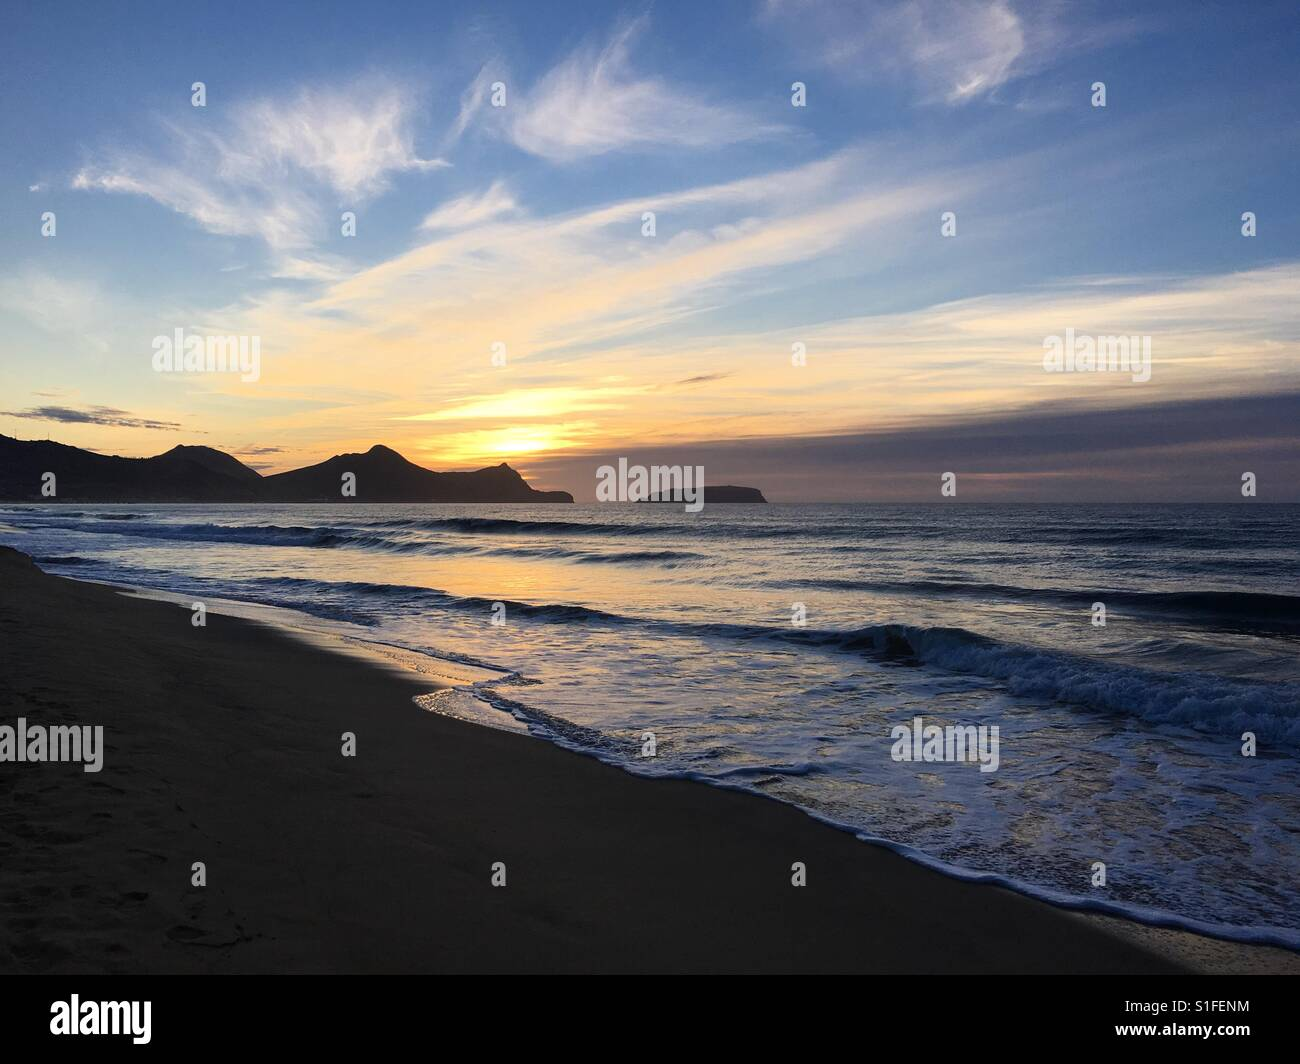 Sunrise over the mountains of Porto Santo Island, Madeira - Stock Image